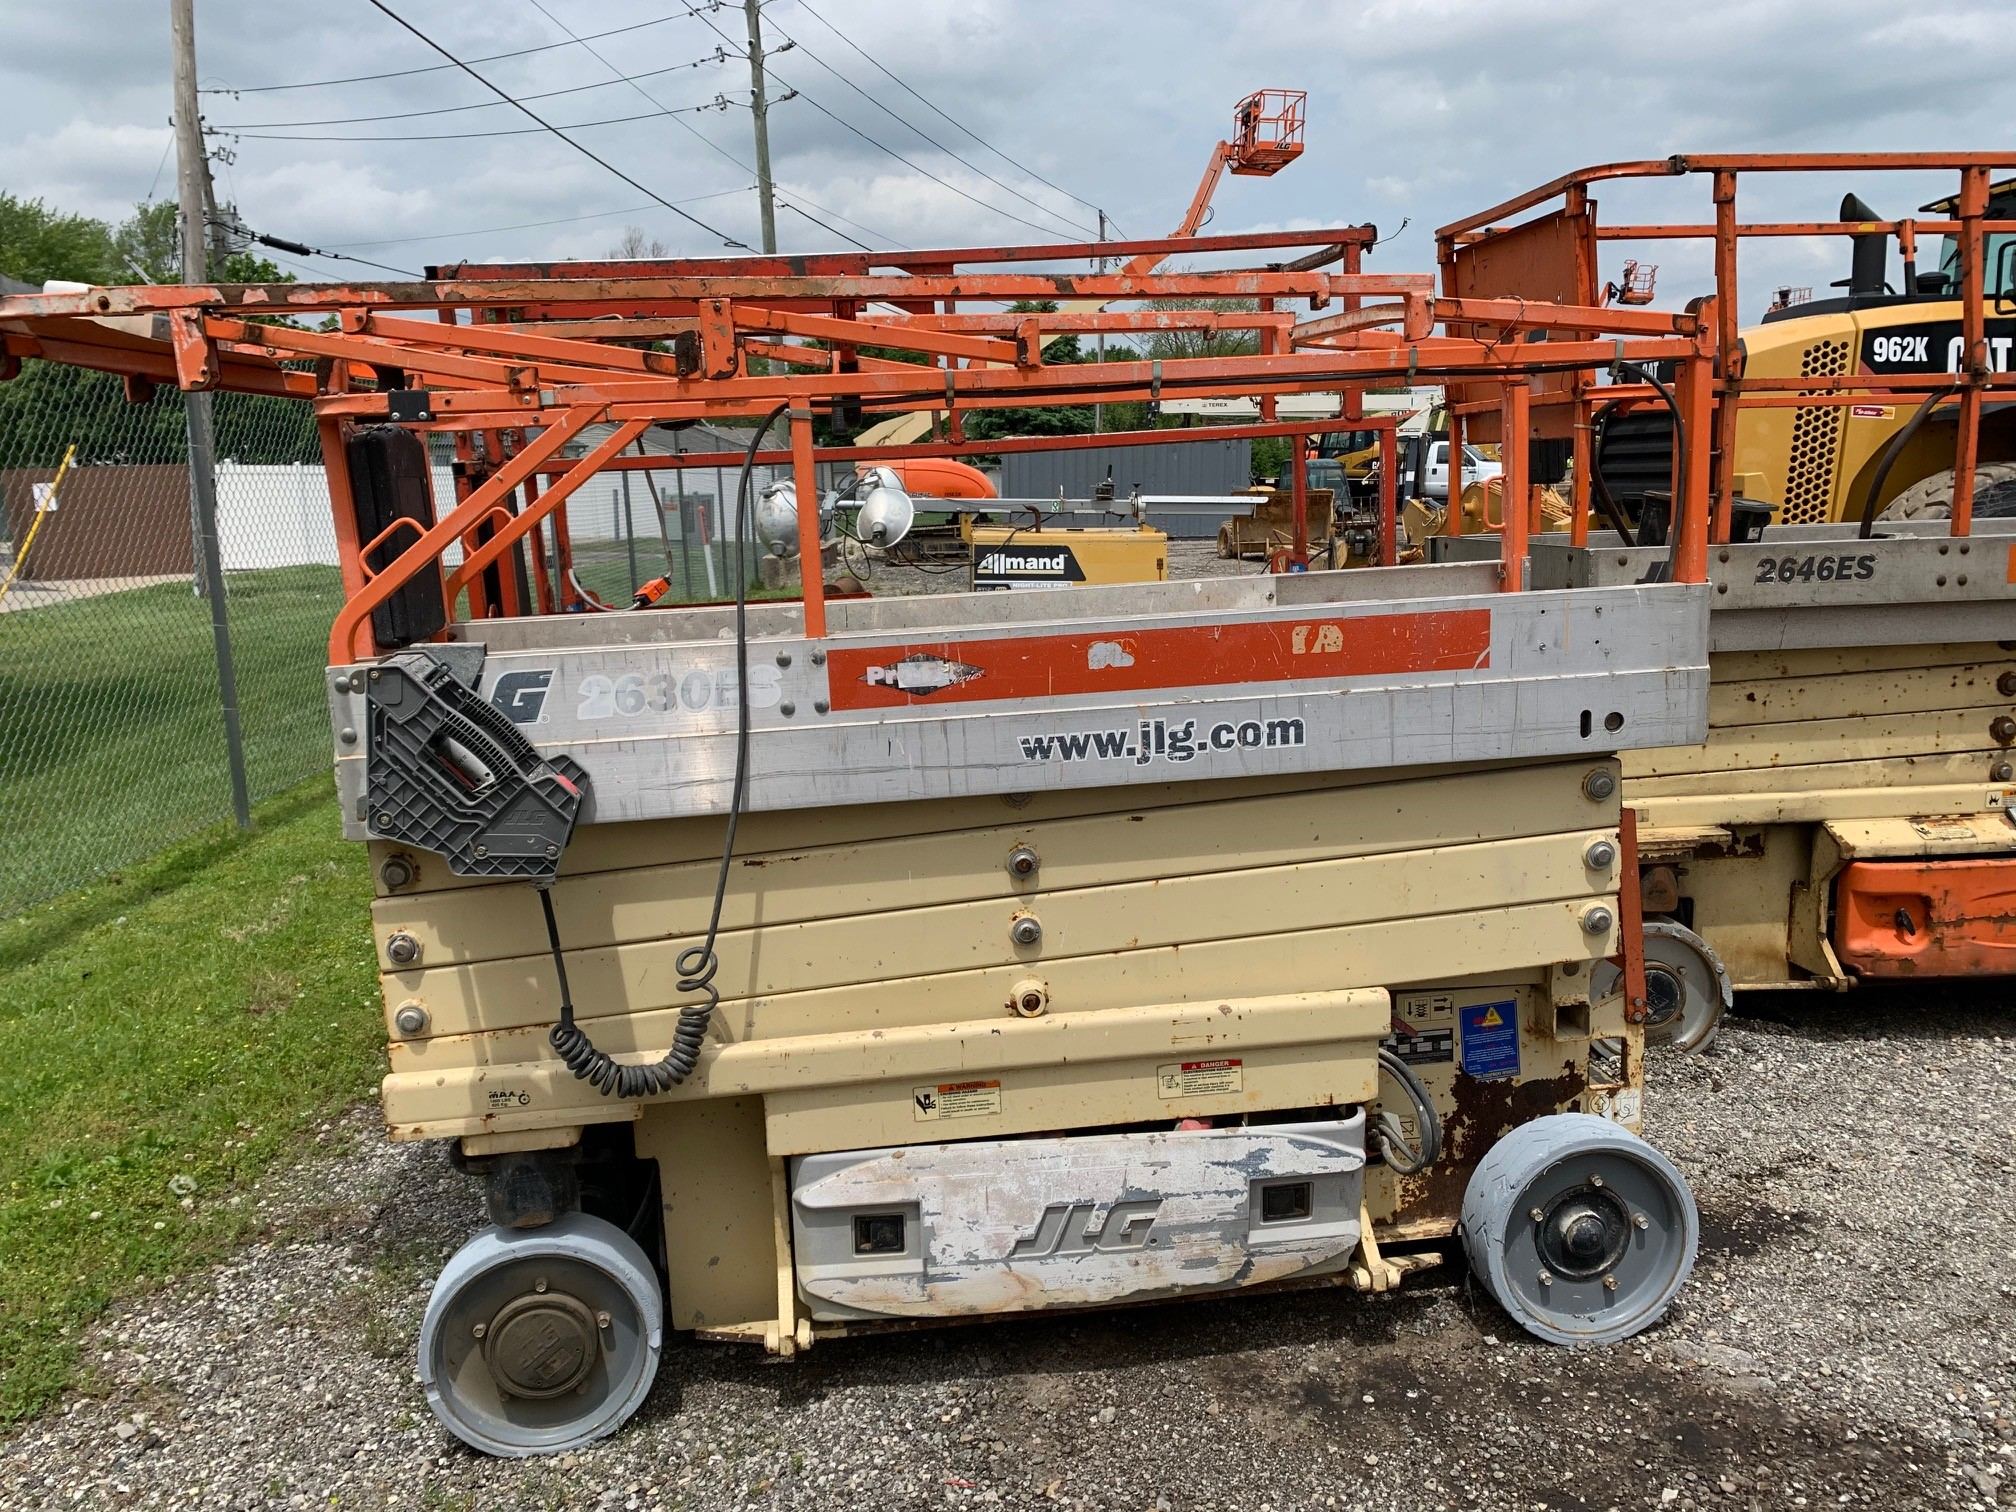 Patriot Electric Online Auction In Avon, IN